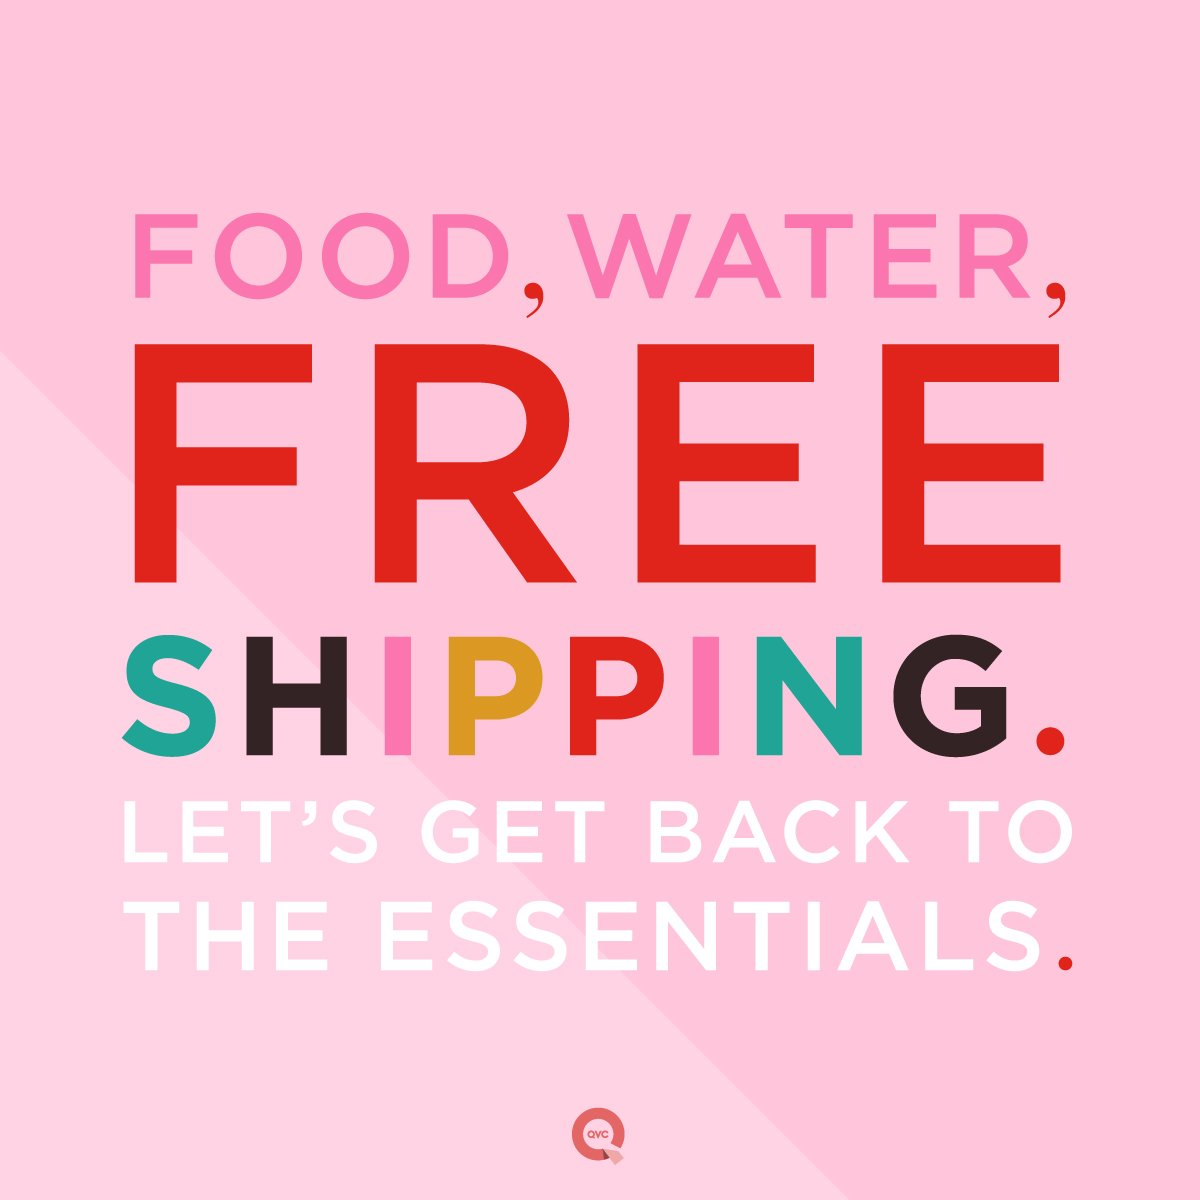 RT @QVC: FREE. SHIPPING. ON. EVERYTHING. GO! > https://t.co/kSBmihxhOb https://t.co/WdzTeEAHX8